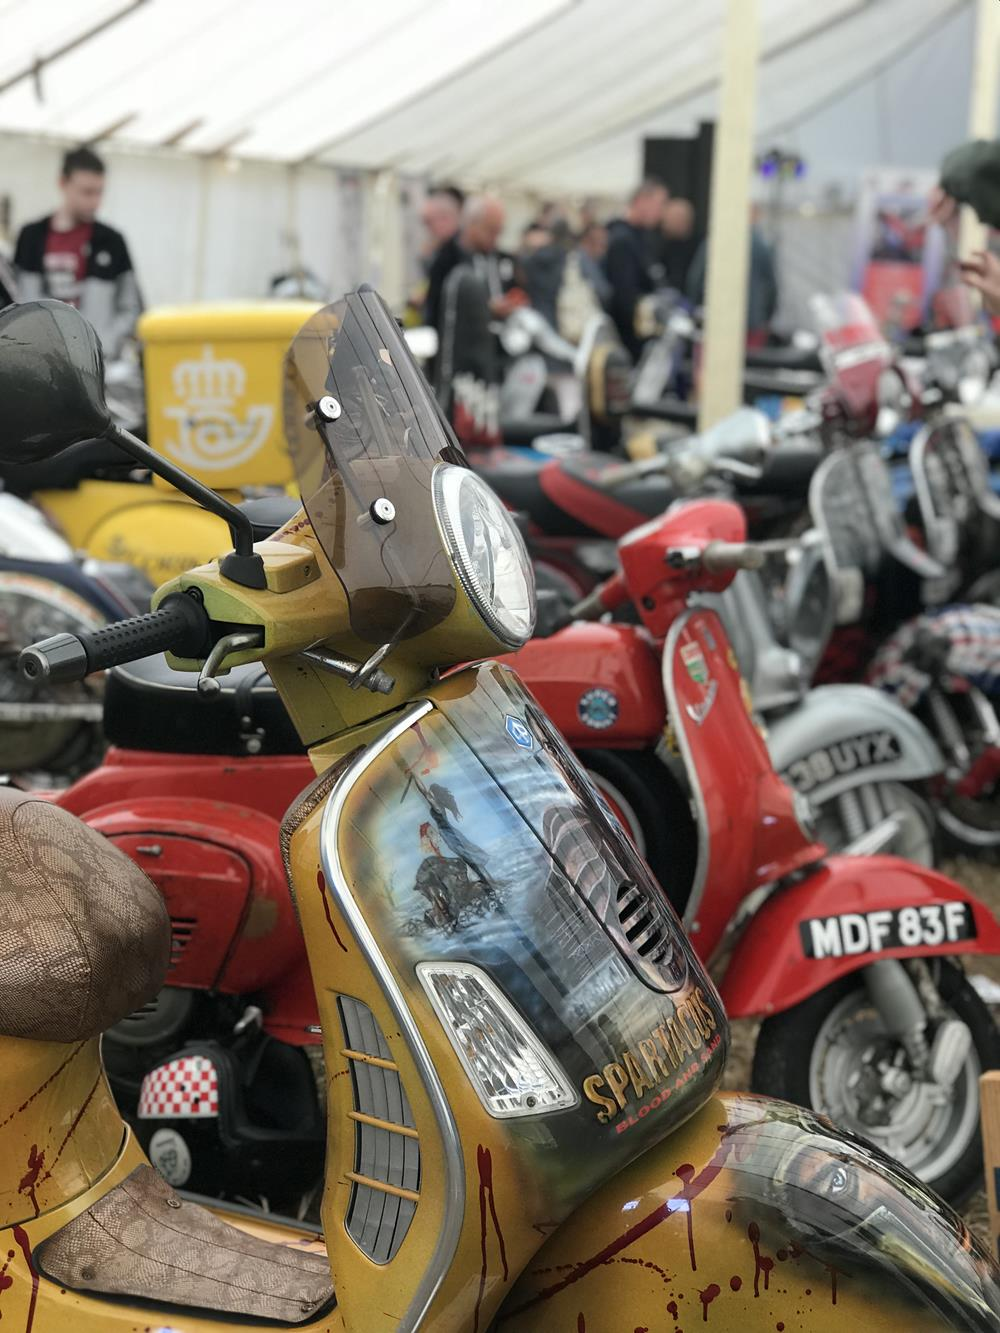 Row of scooters at the Isle of Wight custom show, with Spartacus in the foreground